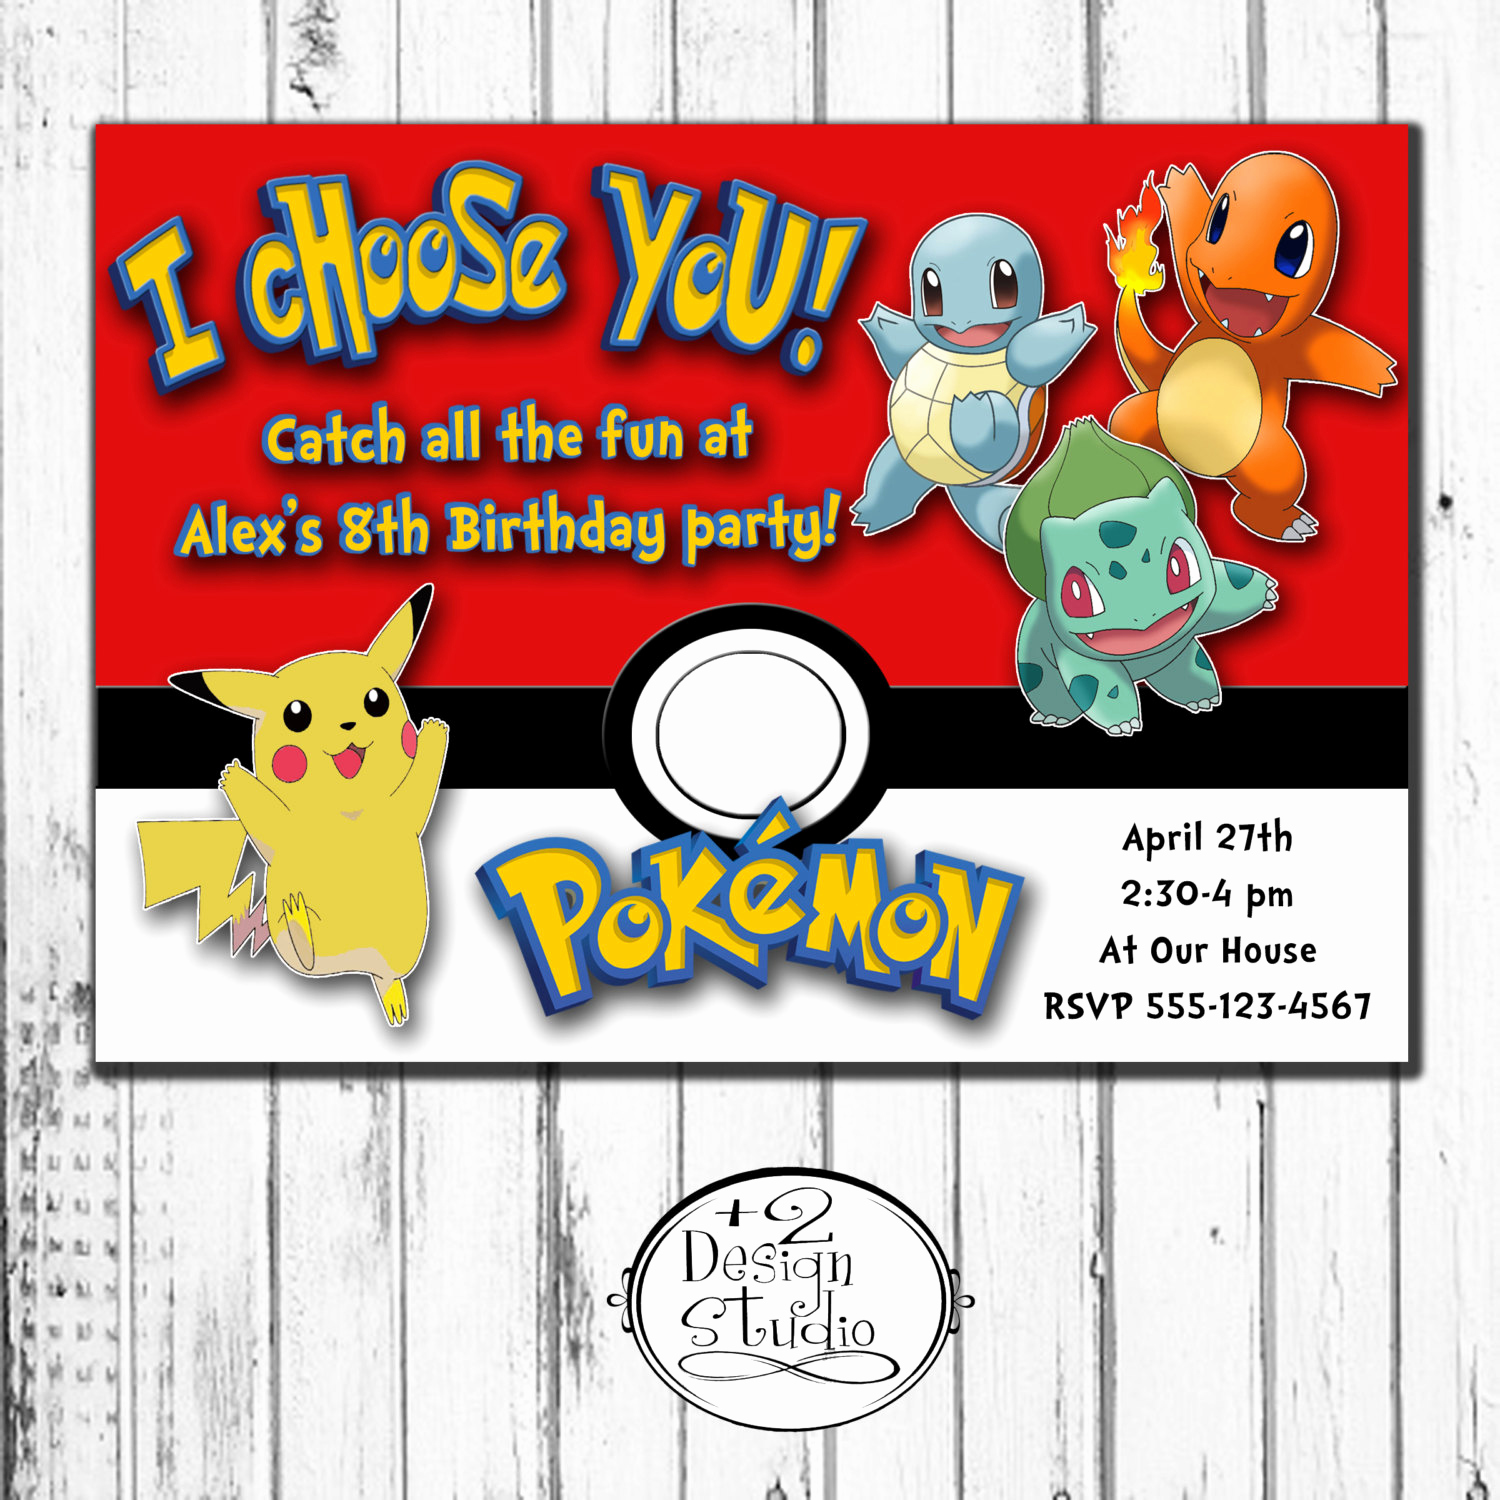 Pokemon Birthday Invitation Templates Fresh I Choose You Pokemon Birthday Invitation by Kccreativedesign